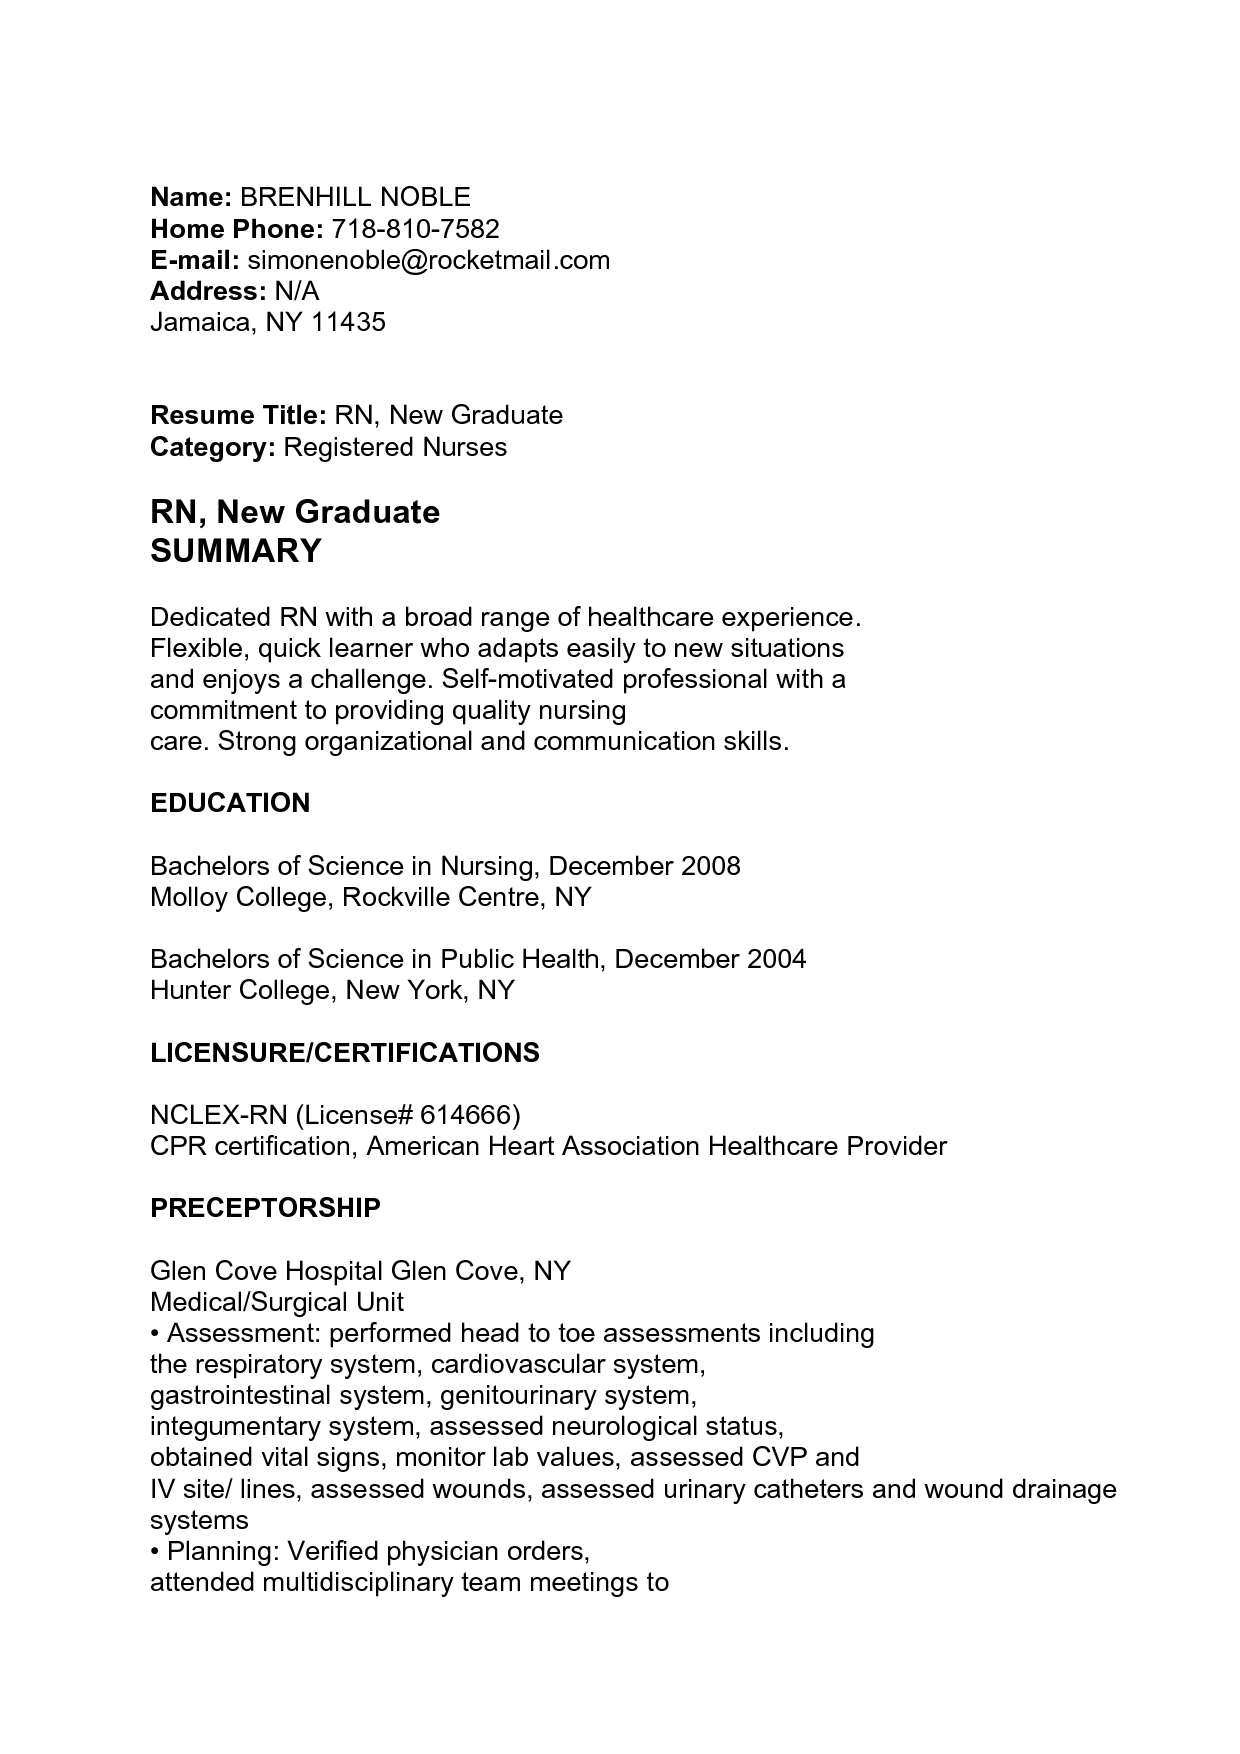 RN New Graduate SUMMARY Nursing resume